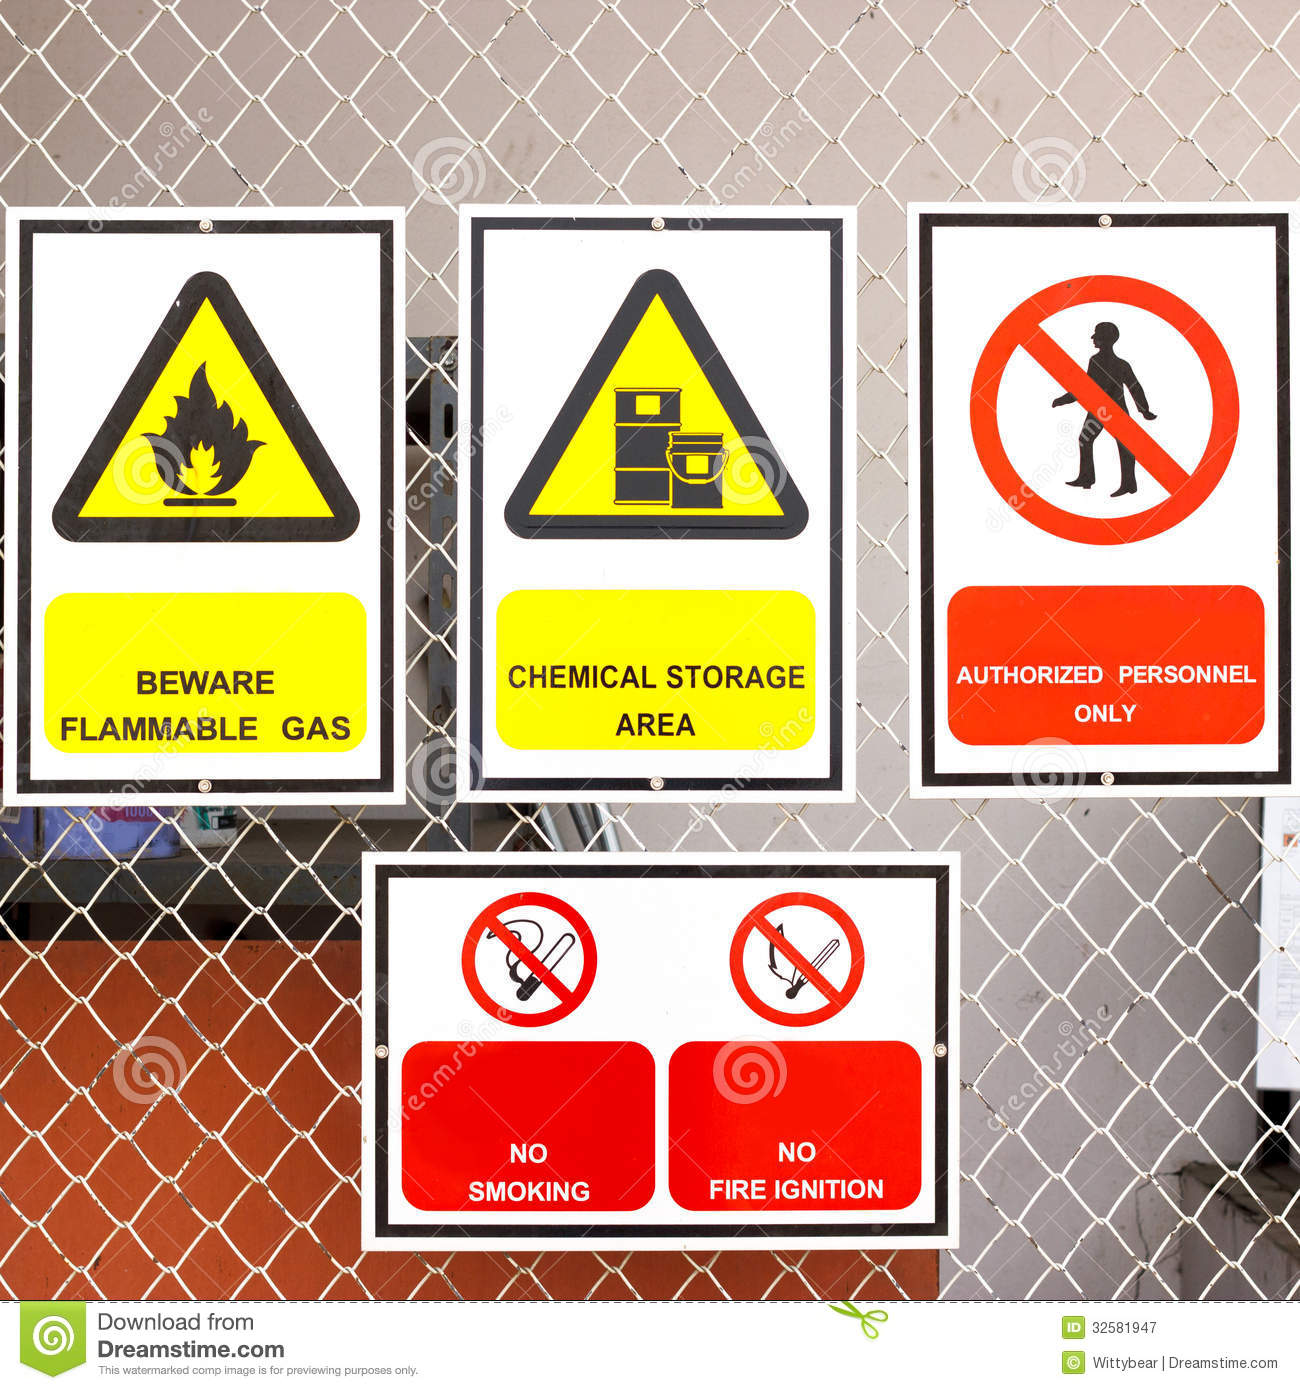 How To Read A Floor Plan Symbols Safety Signs Board In Factory Royalty Free Stock